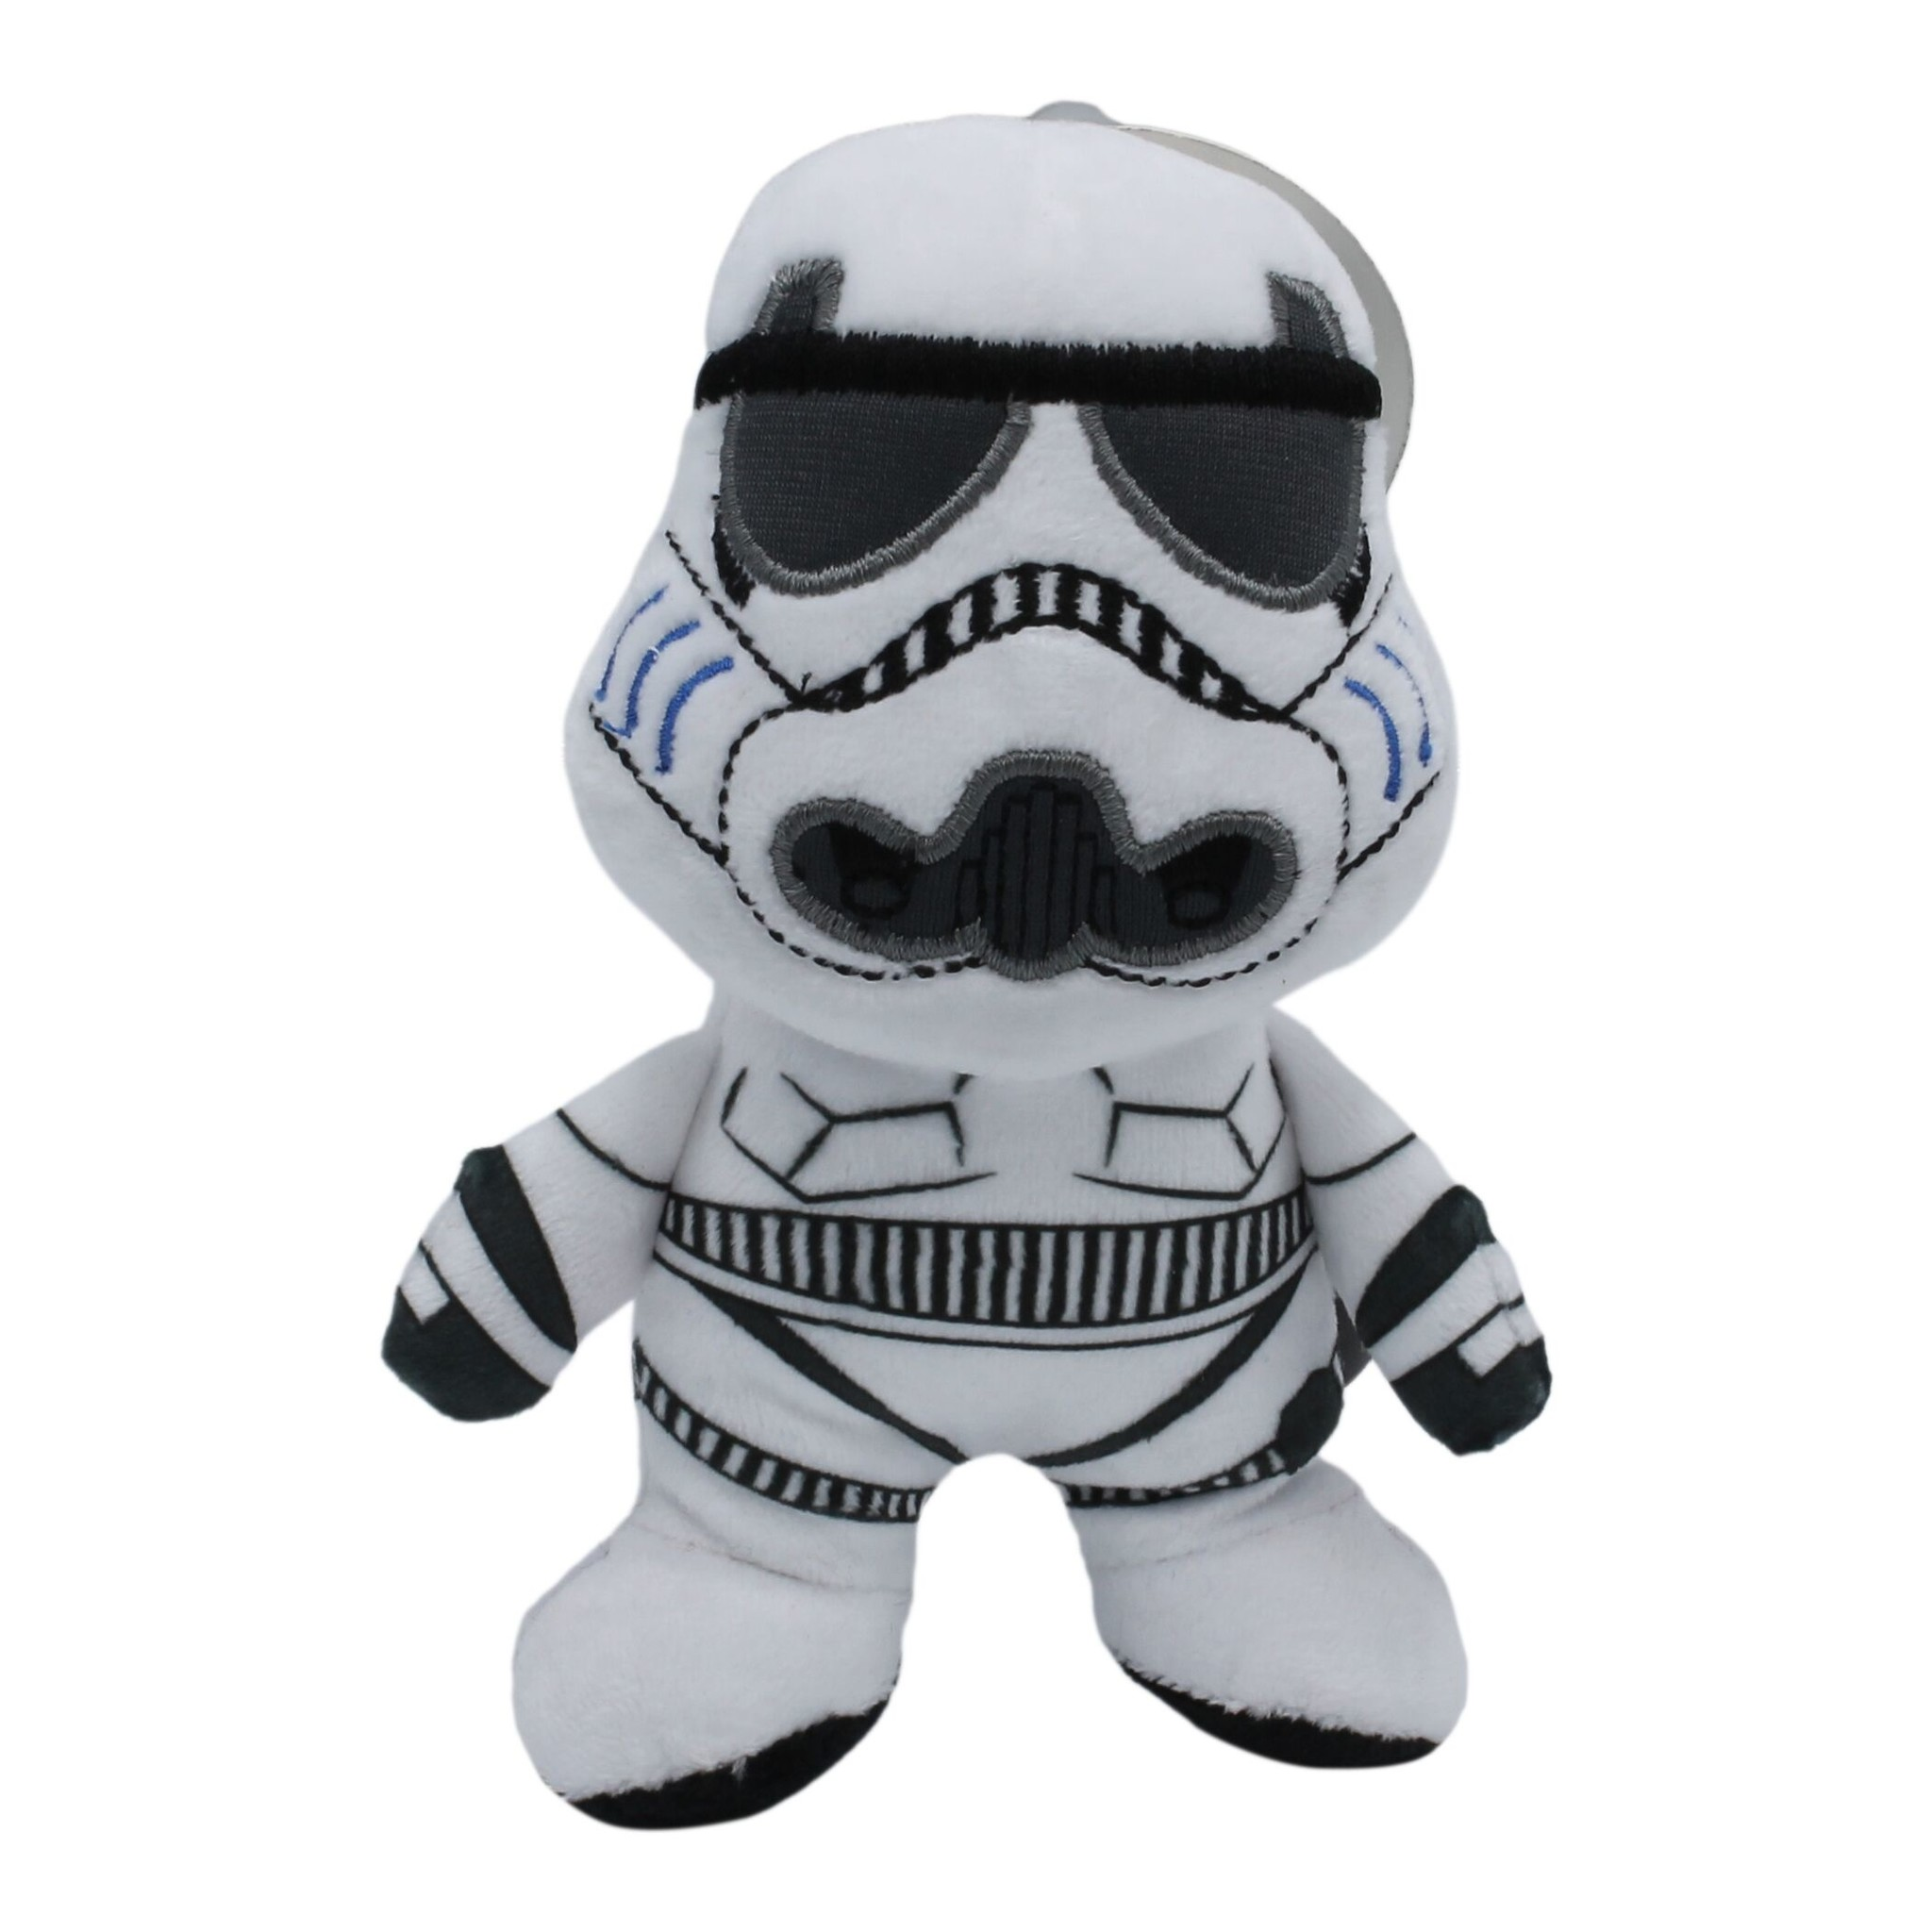 Fetch For Pets Star Wars Storm Trooper Plush Figure